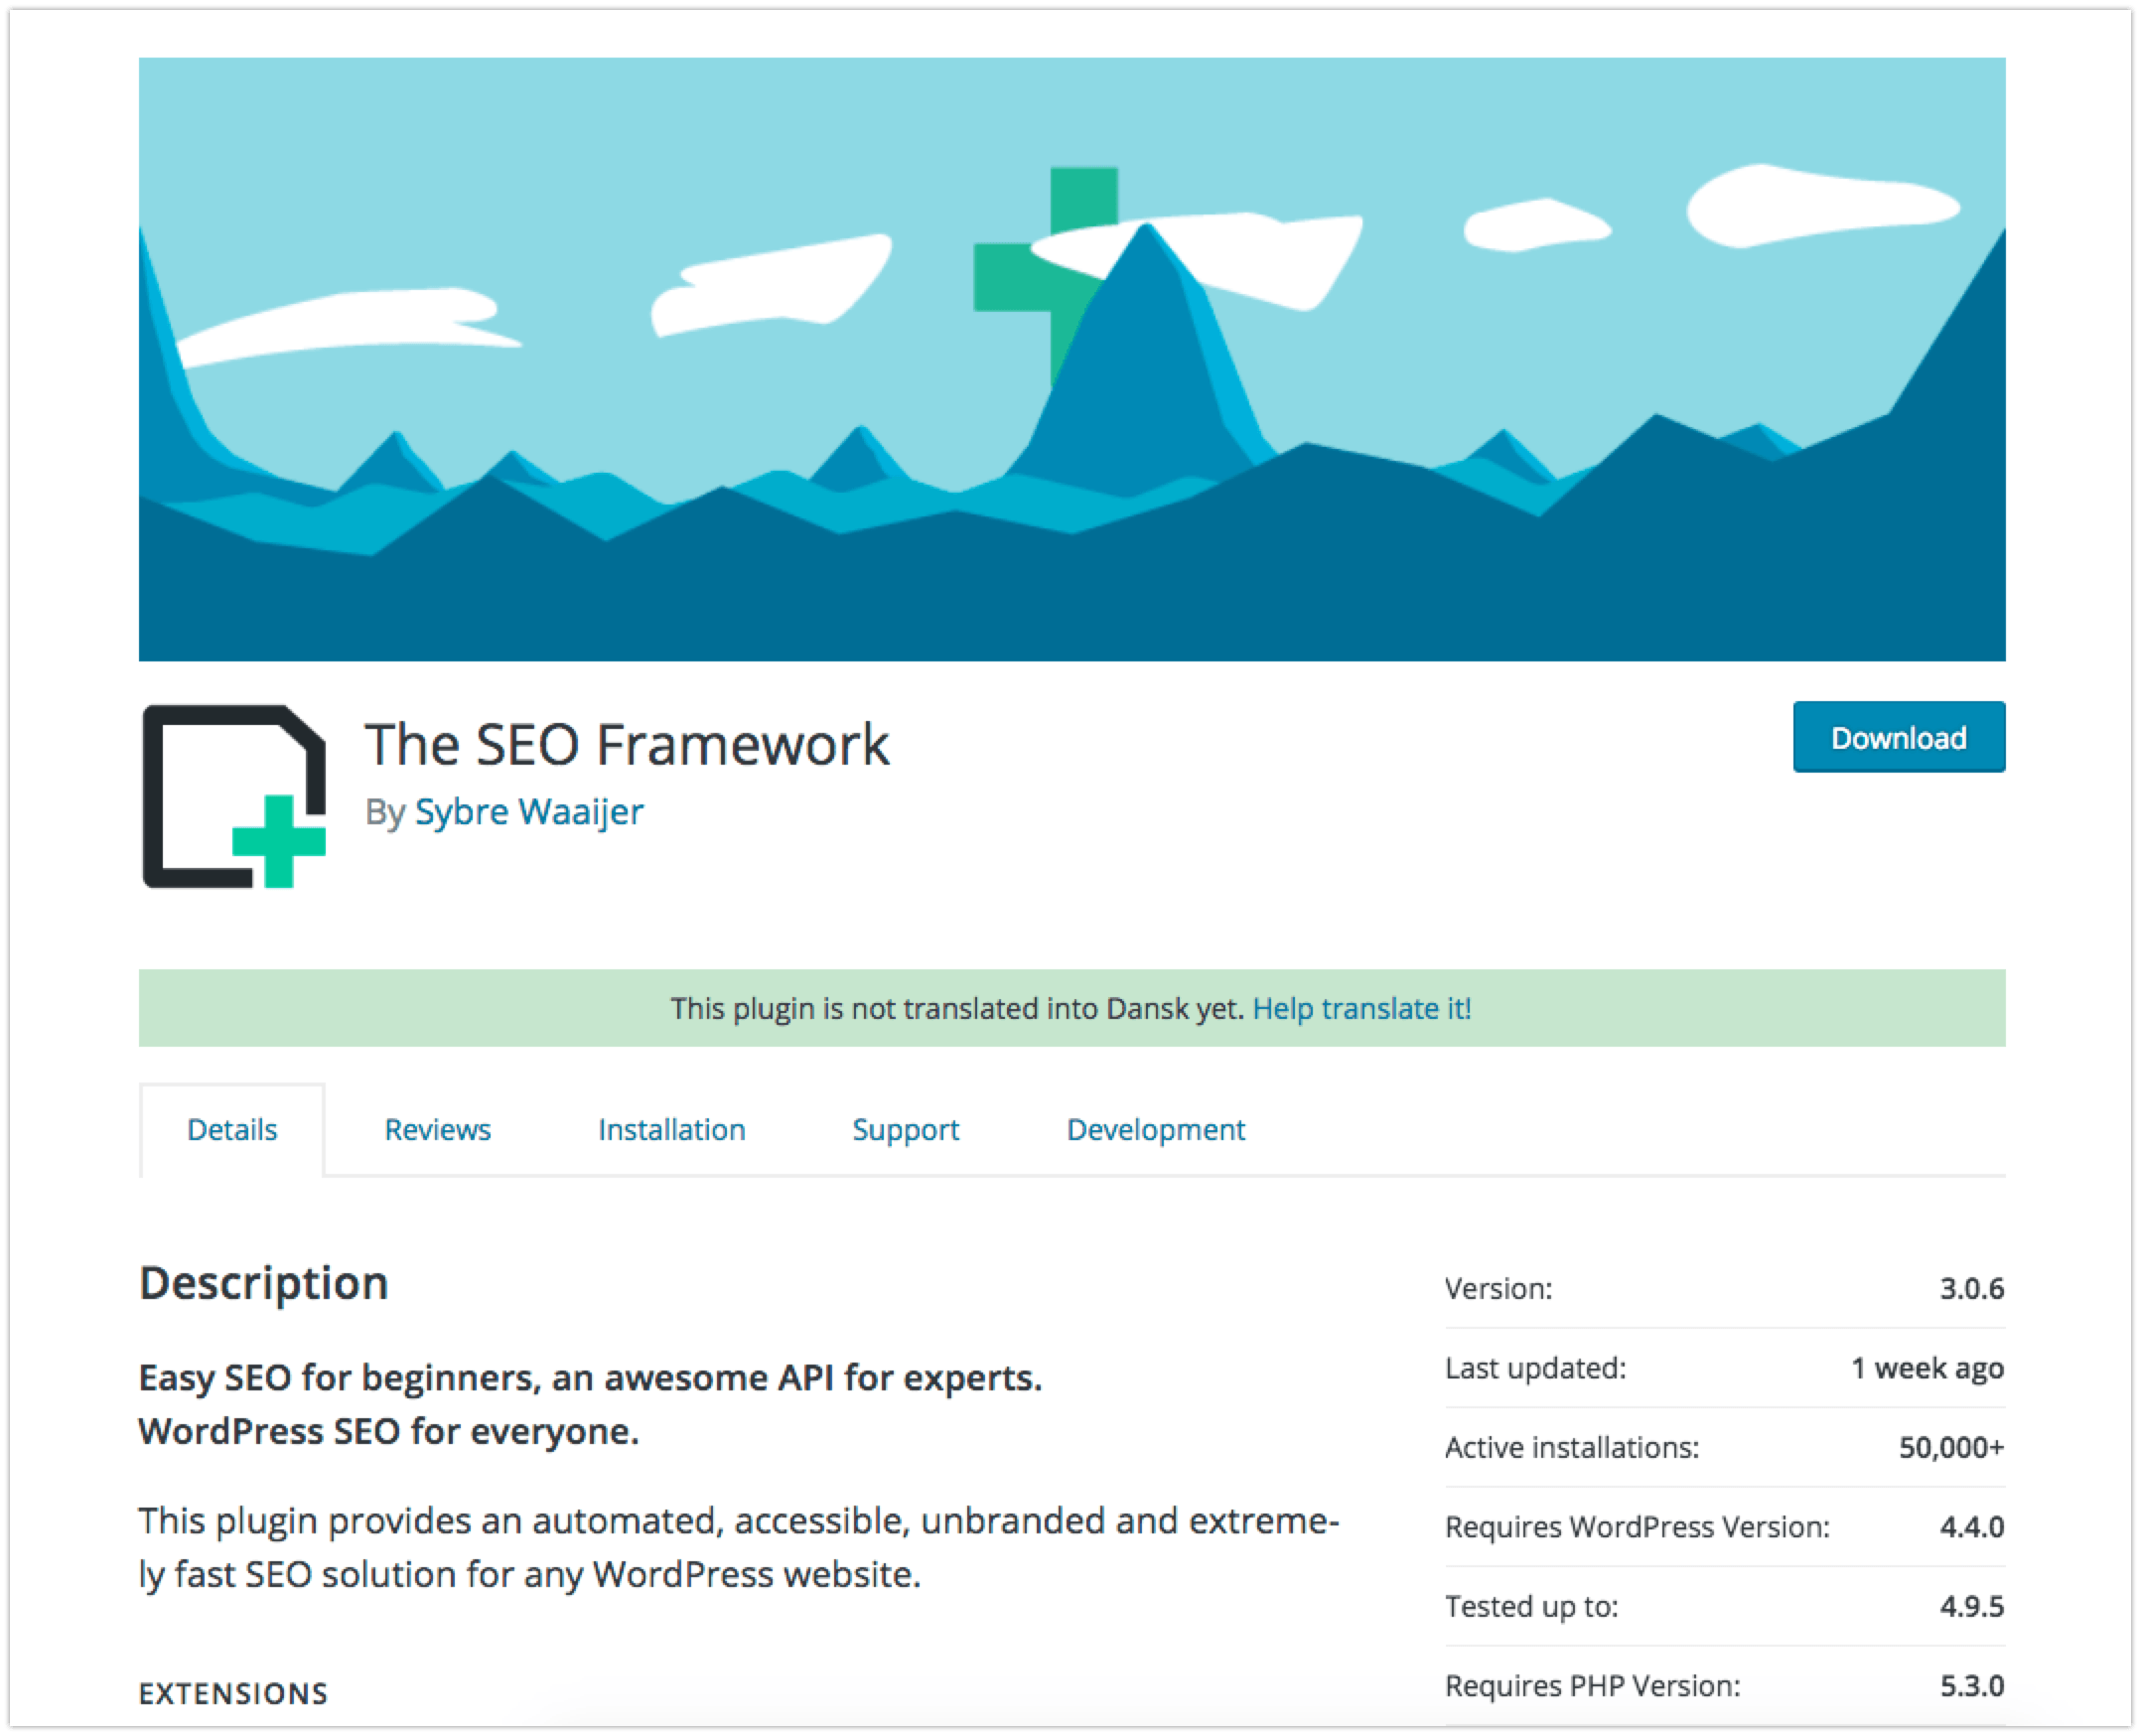 Migrate Yoast SEO to The SEO Framework Plugin